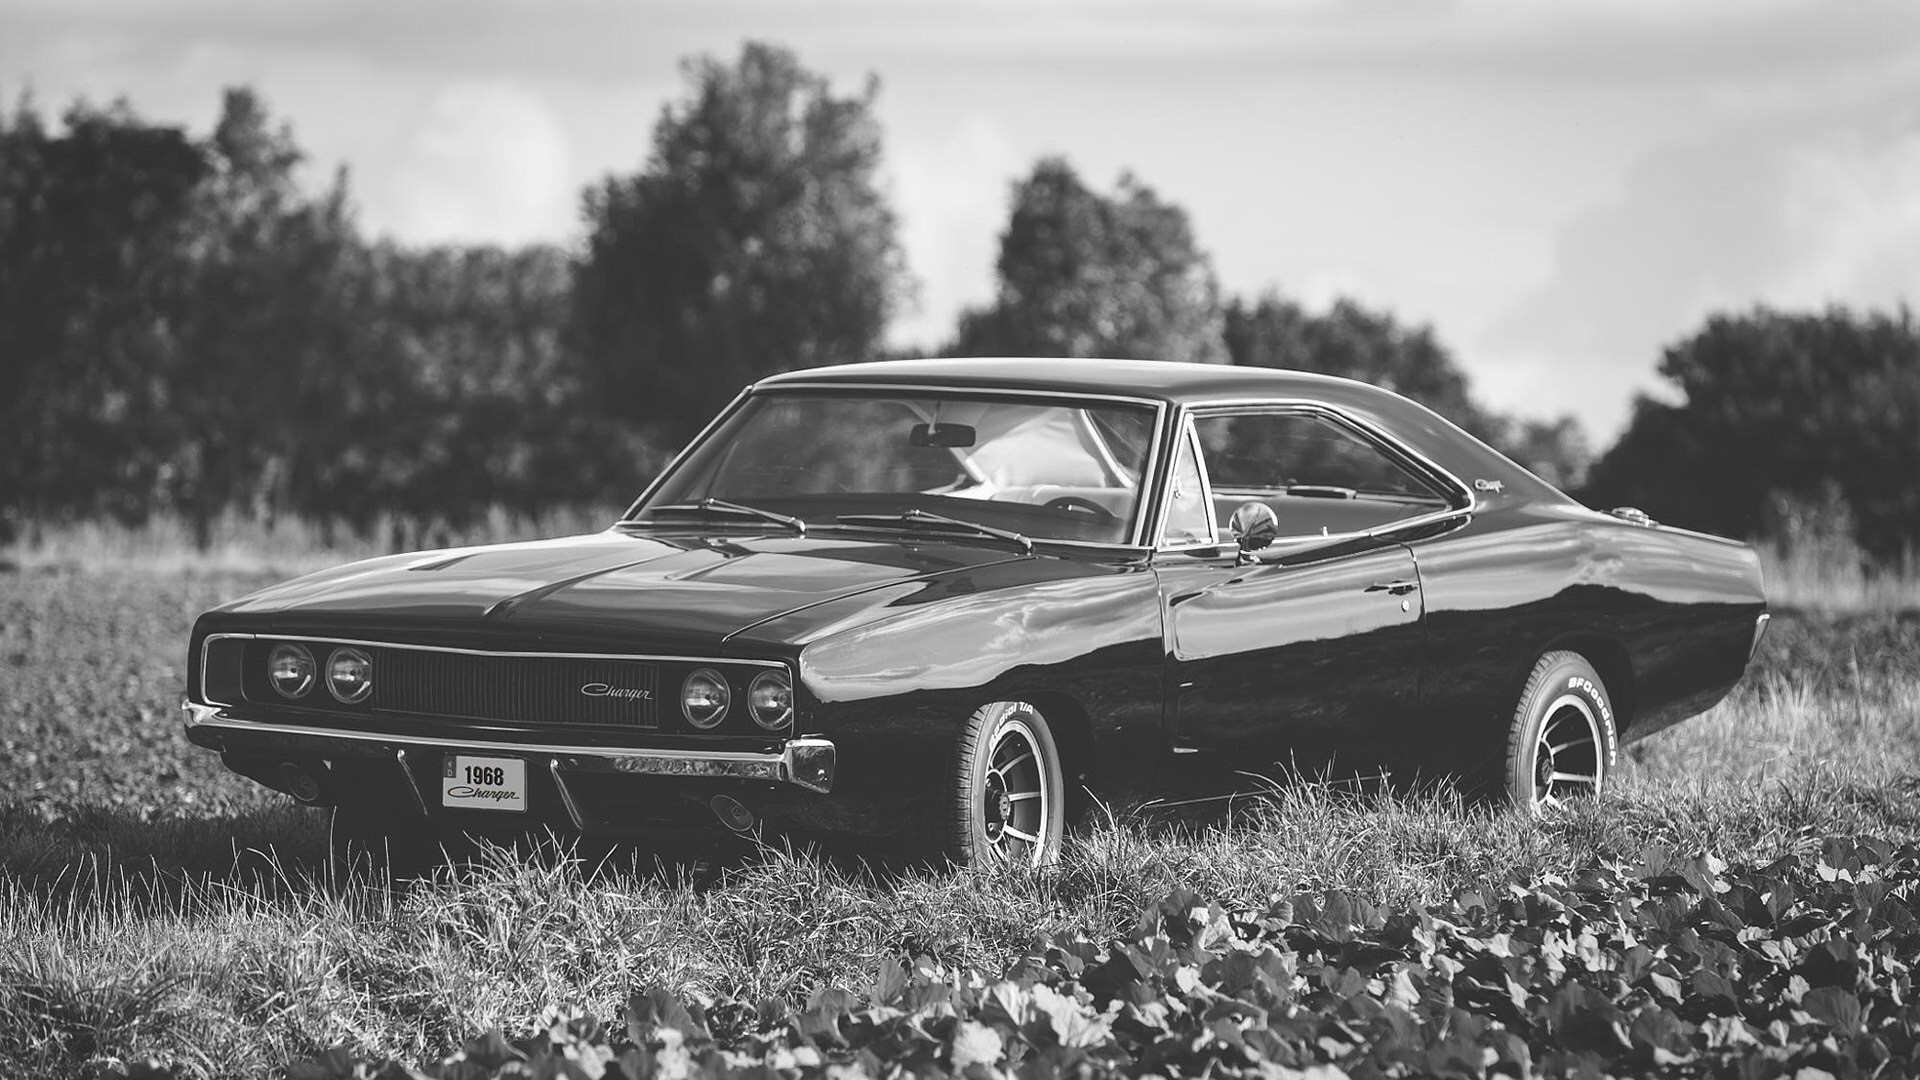 Dodge Charger Wallpaper Free Download